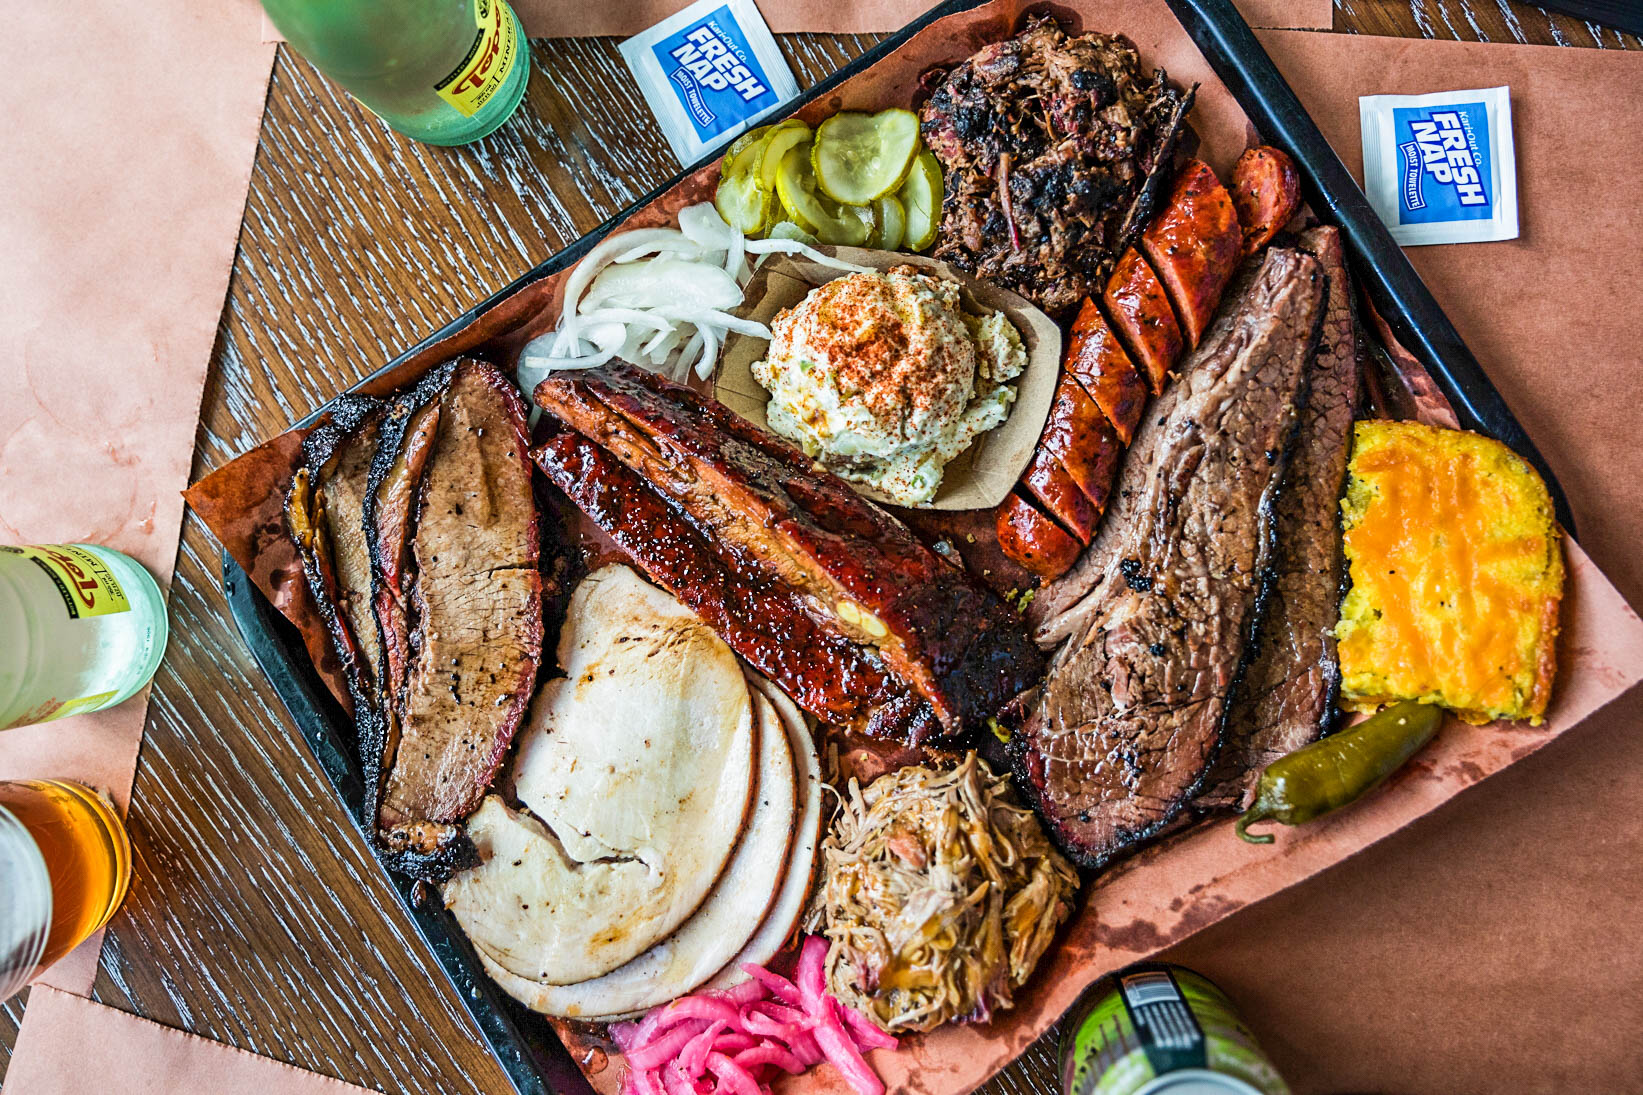 A fully loaded tray at Lewis BBQ